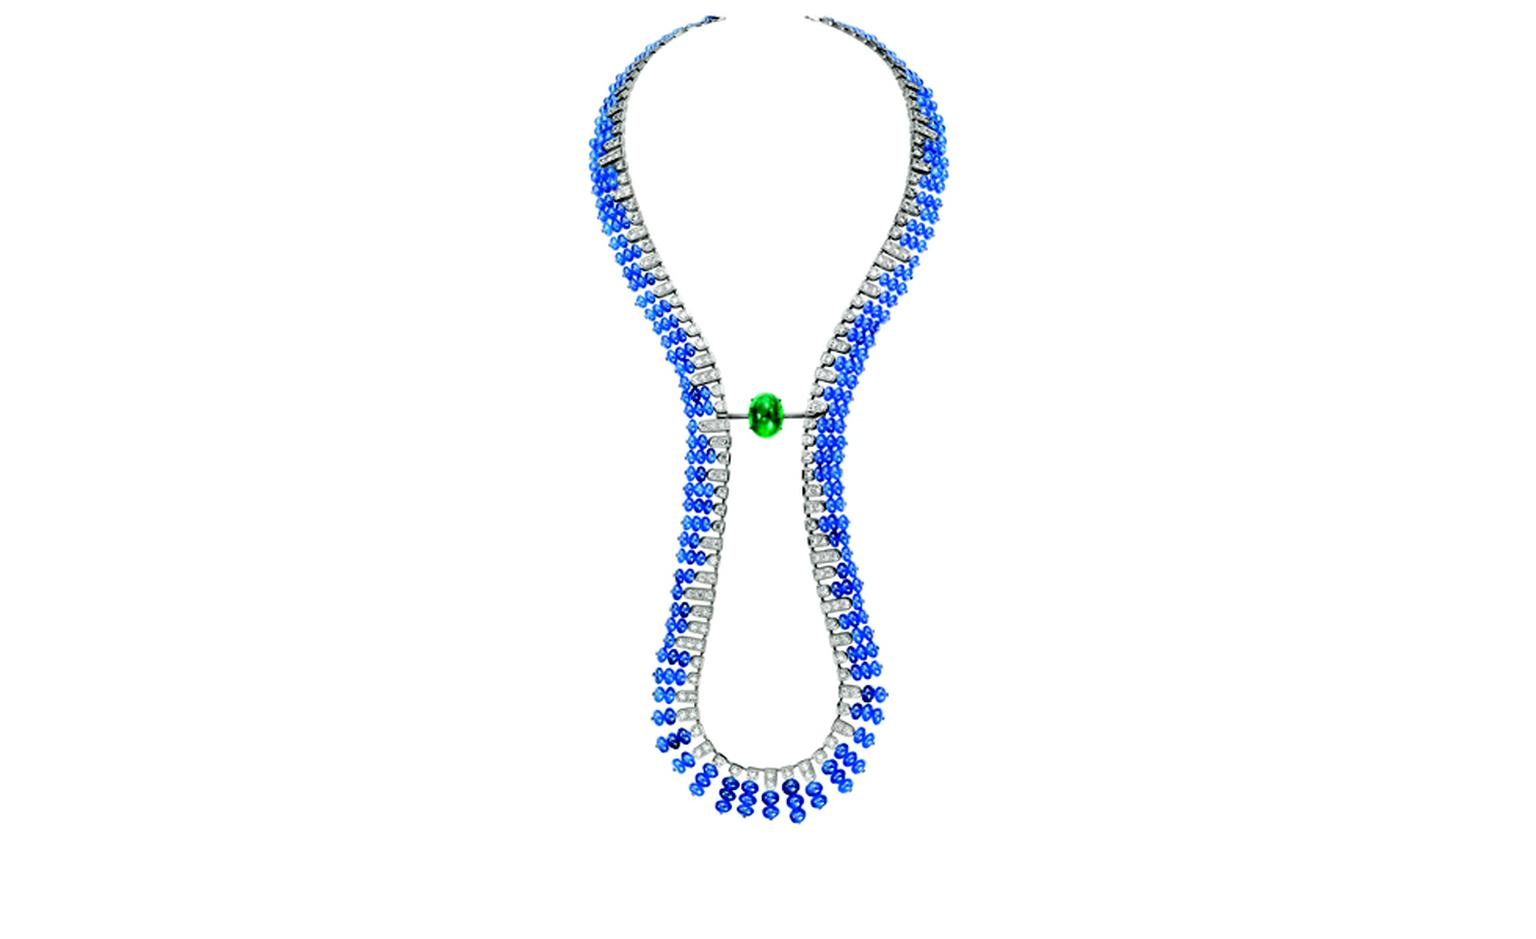 BOUCHERON. Beau Rivage necklace, set with an oval cabochon emerald and sapphire beads, paved with diamonds, on white gold. The center stone is detachable to be worn separately; the necklace could then be worn as a sautoir. POA